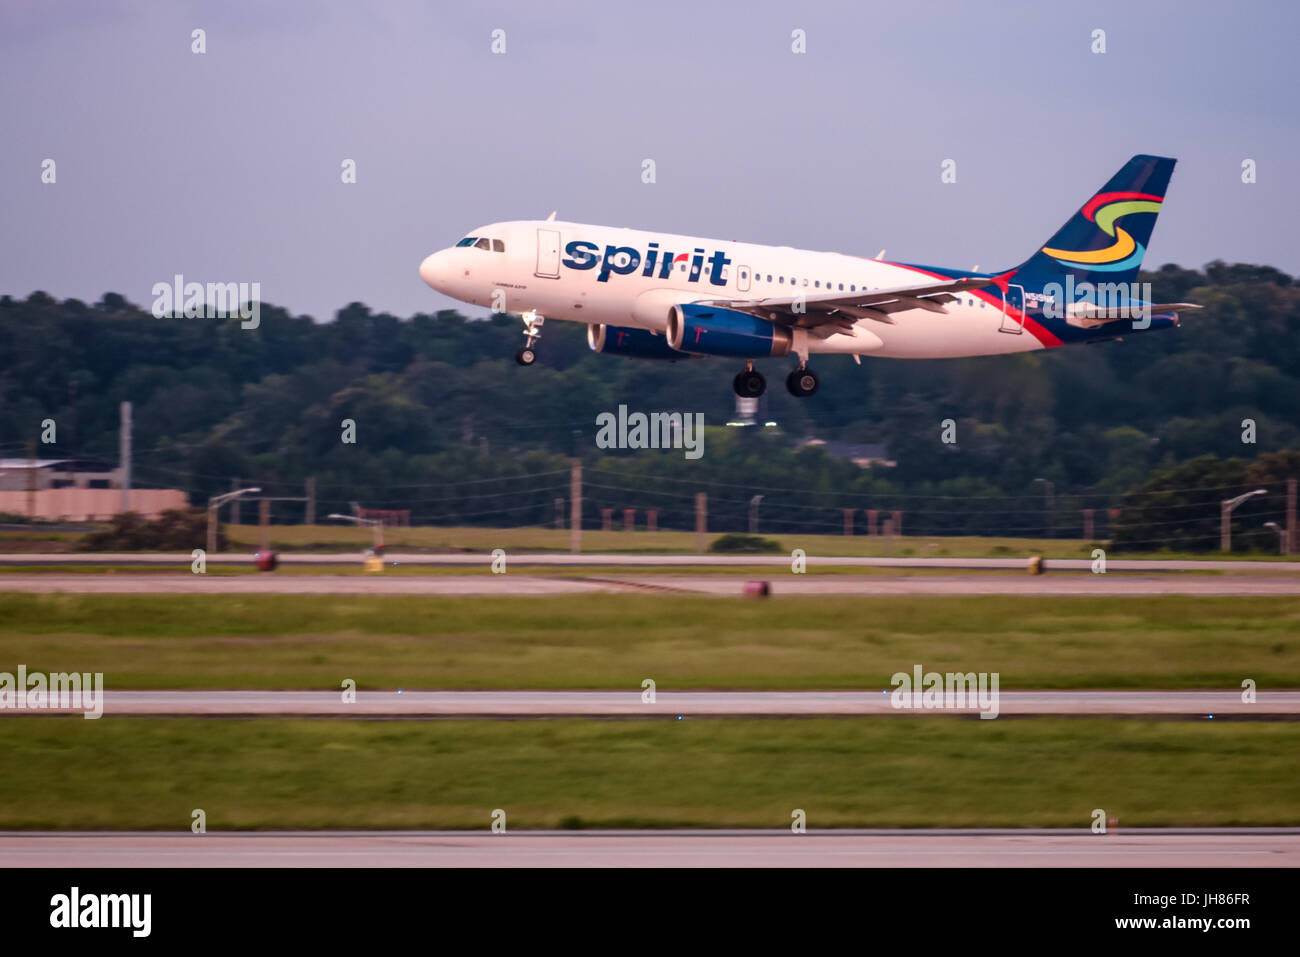 Spirit Airlines passenger jet at Hartsfield-Jackson Atlanta International Airport in Atlanta, Georgia, USA. - Stock Image